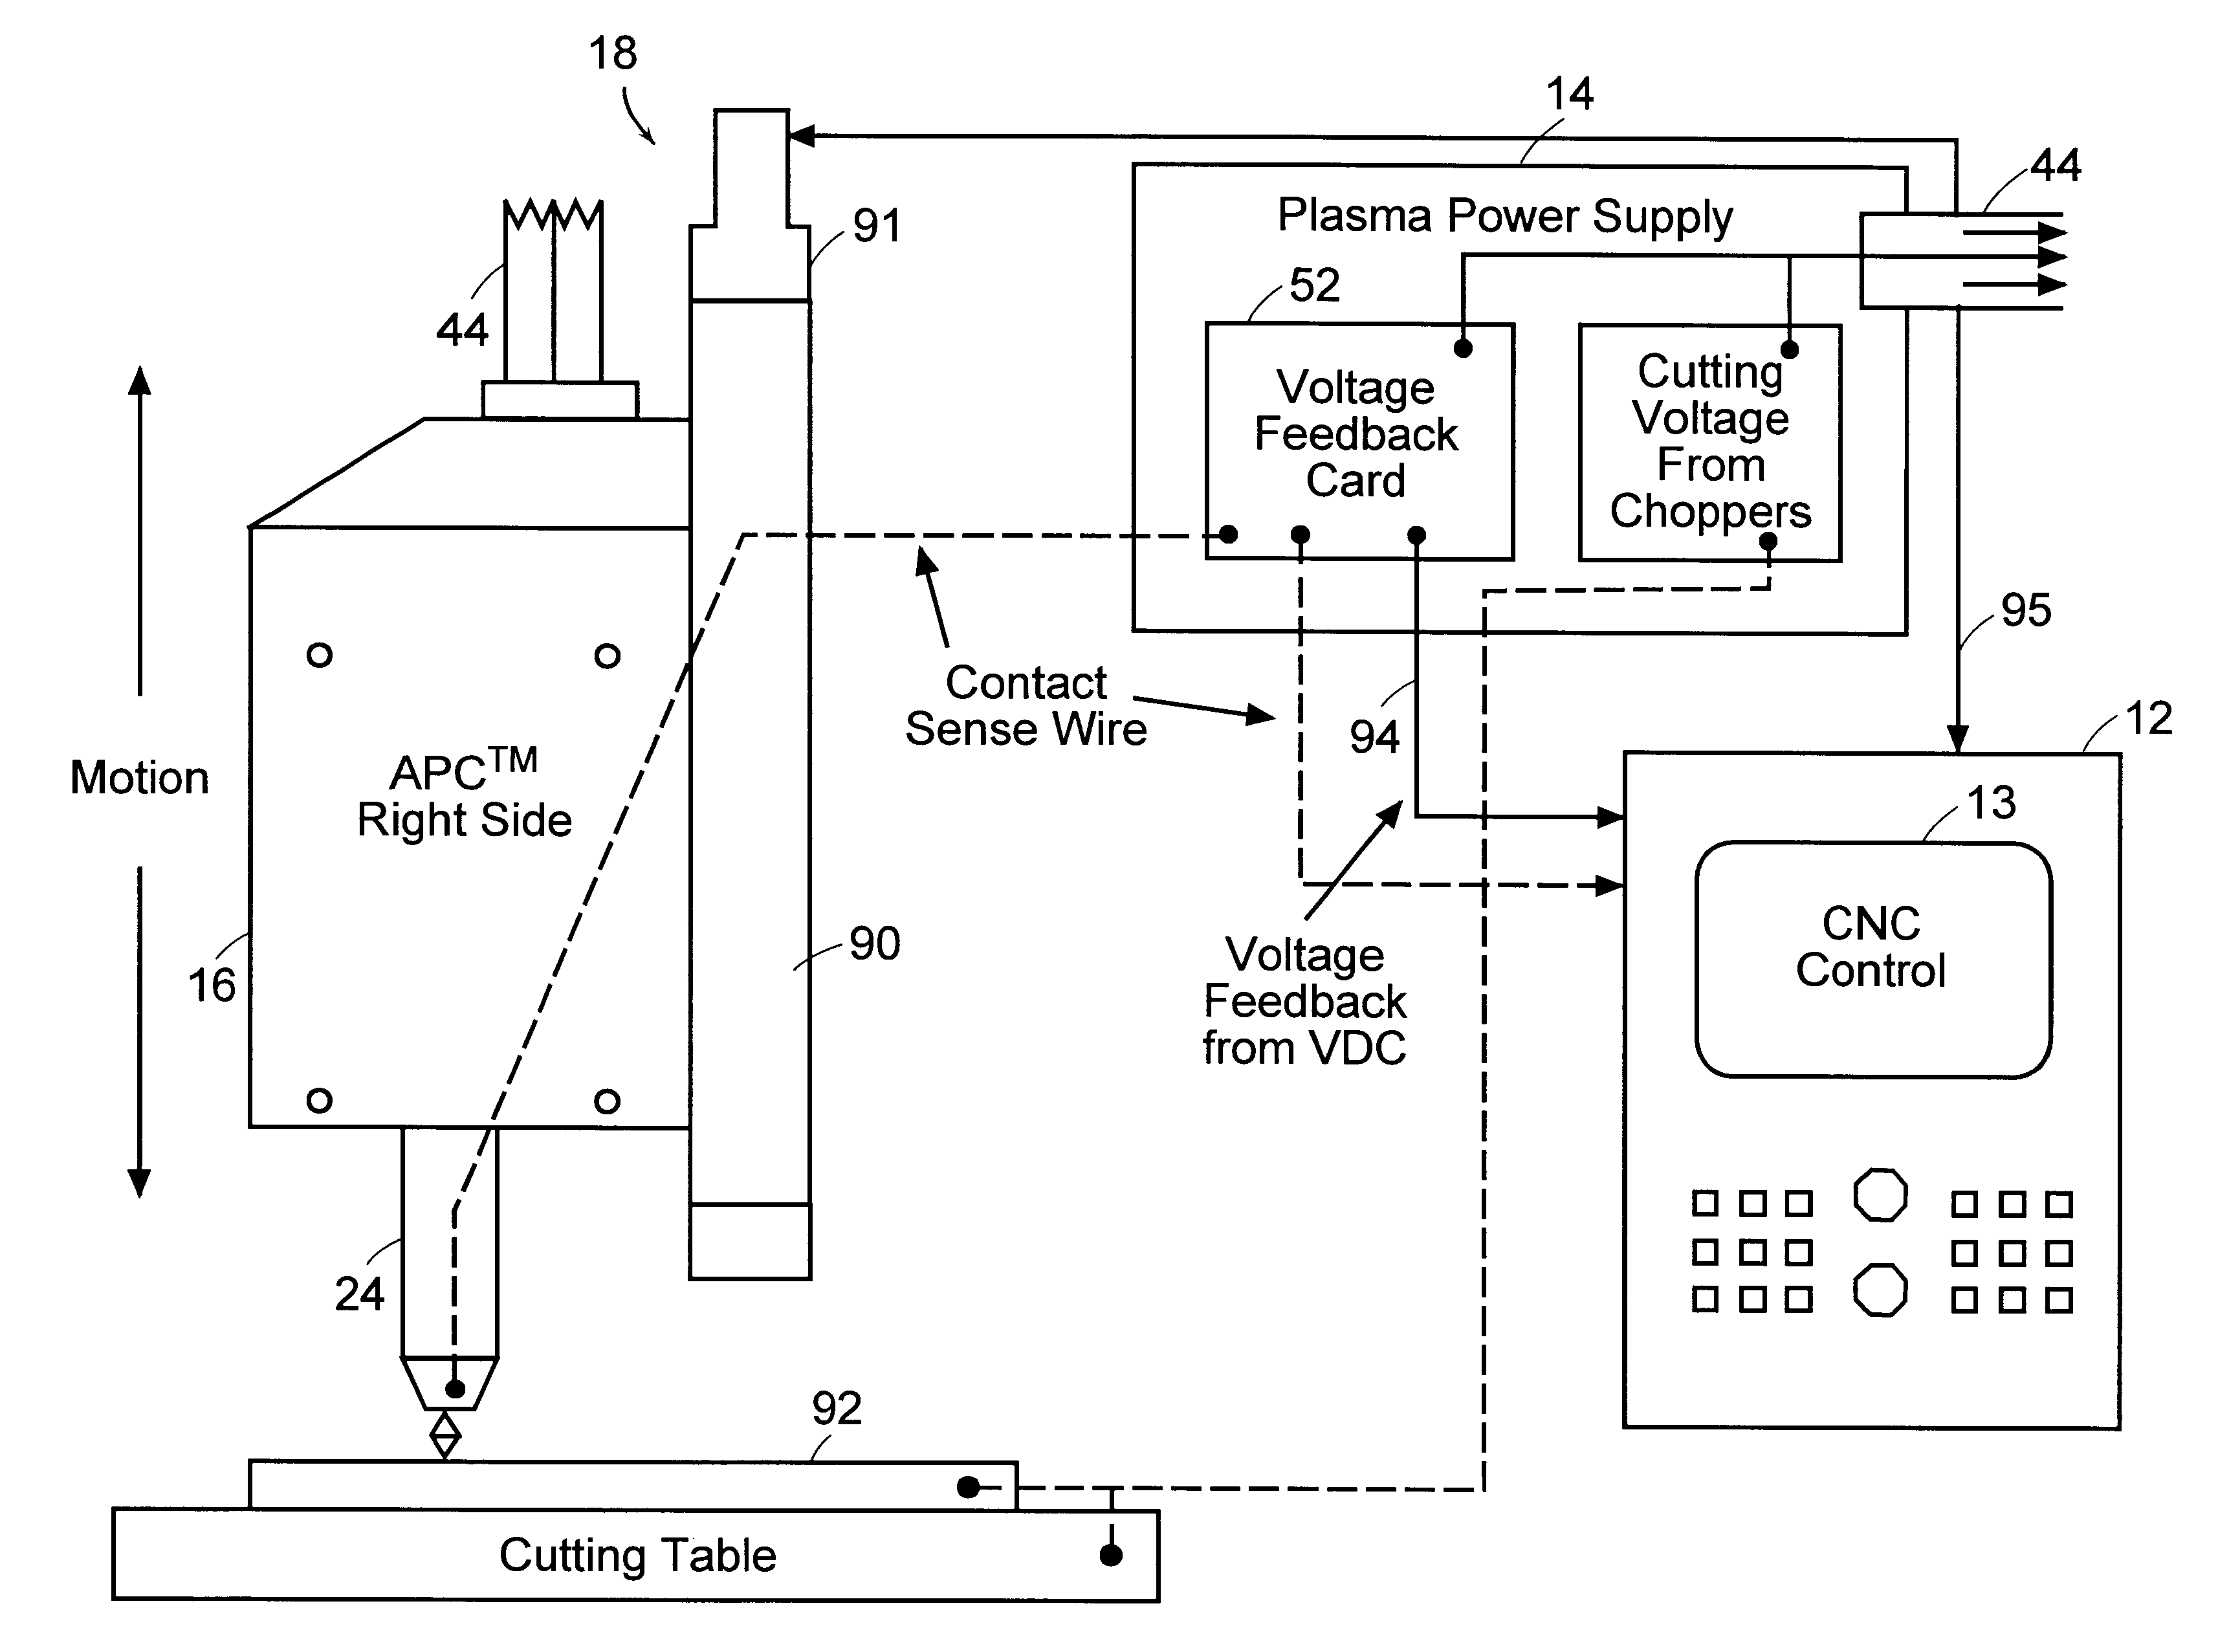 patent us6359251 centralized architecture for a plasma arc system patents